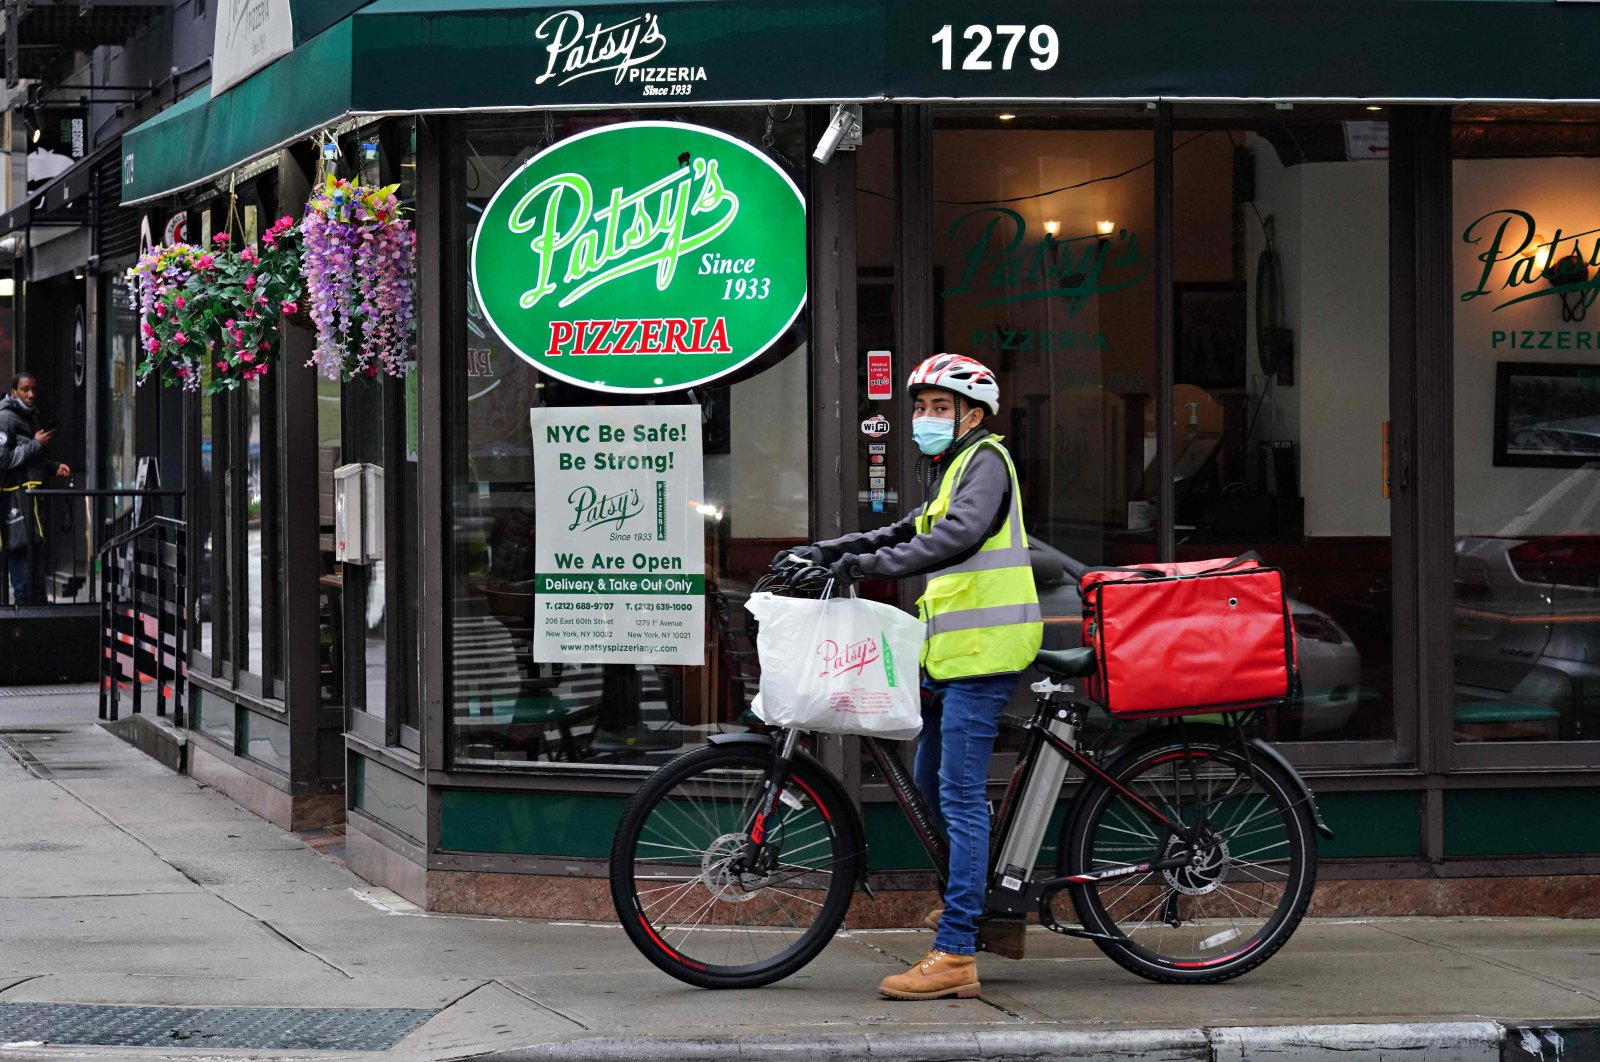 """A restaurant delivery worker on his bike stops by a sign in the window of Patsy's Pizzeria which reads """"NYC Be Safe! Be Strong!"""" during the coronavirus pandemic in New York City, U.S., April 23, 2020. (AFP Photo)"""